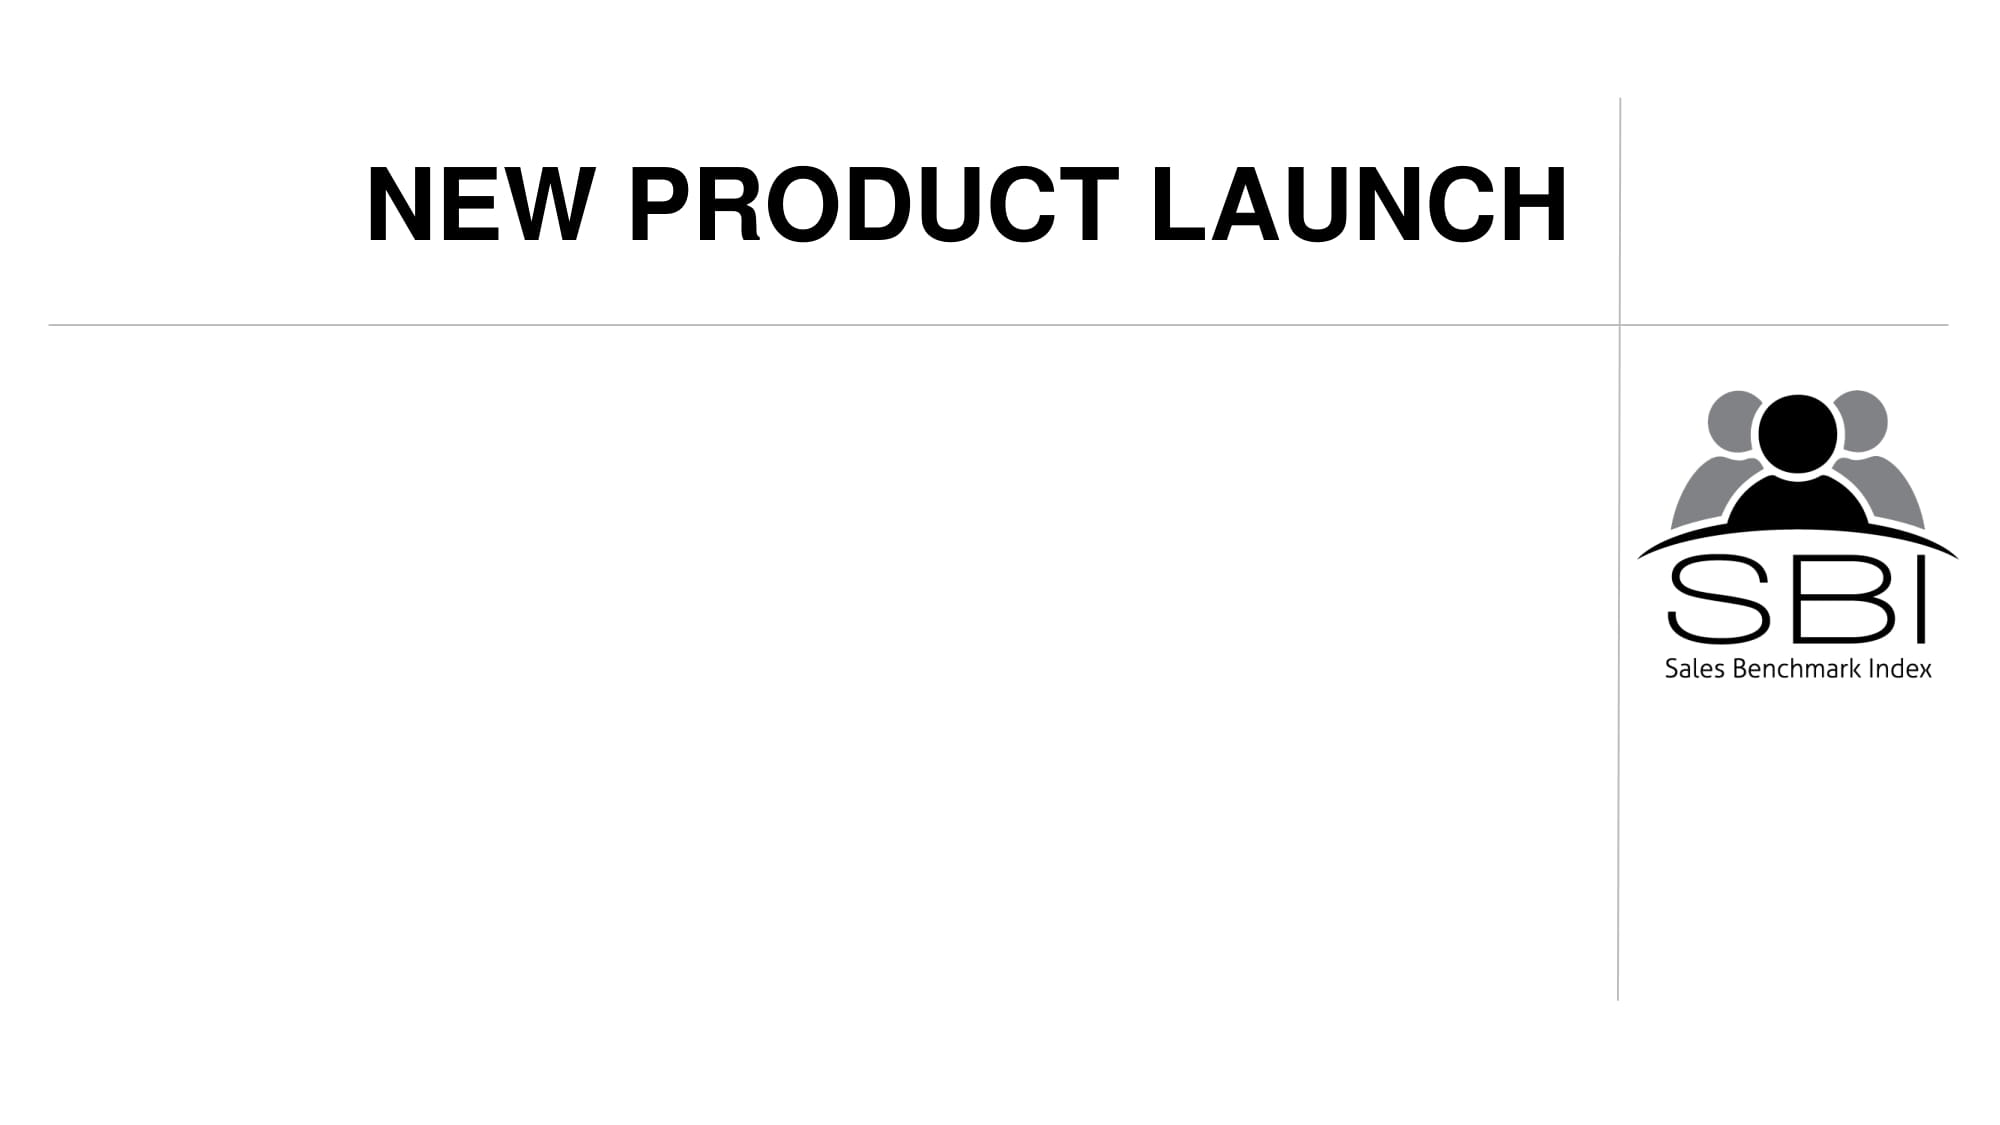 product launch marketing plan example 01